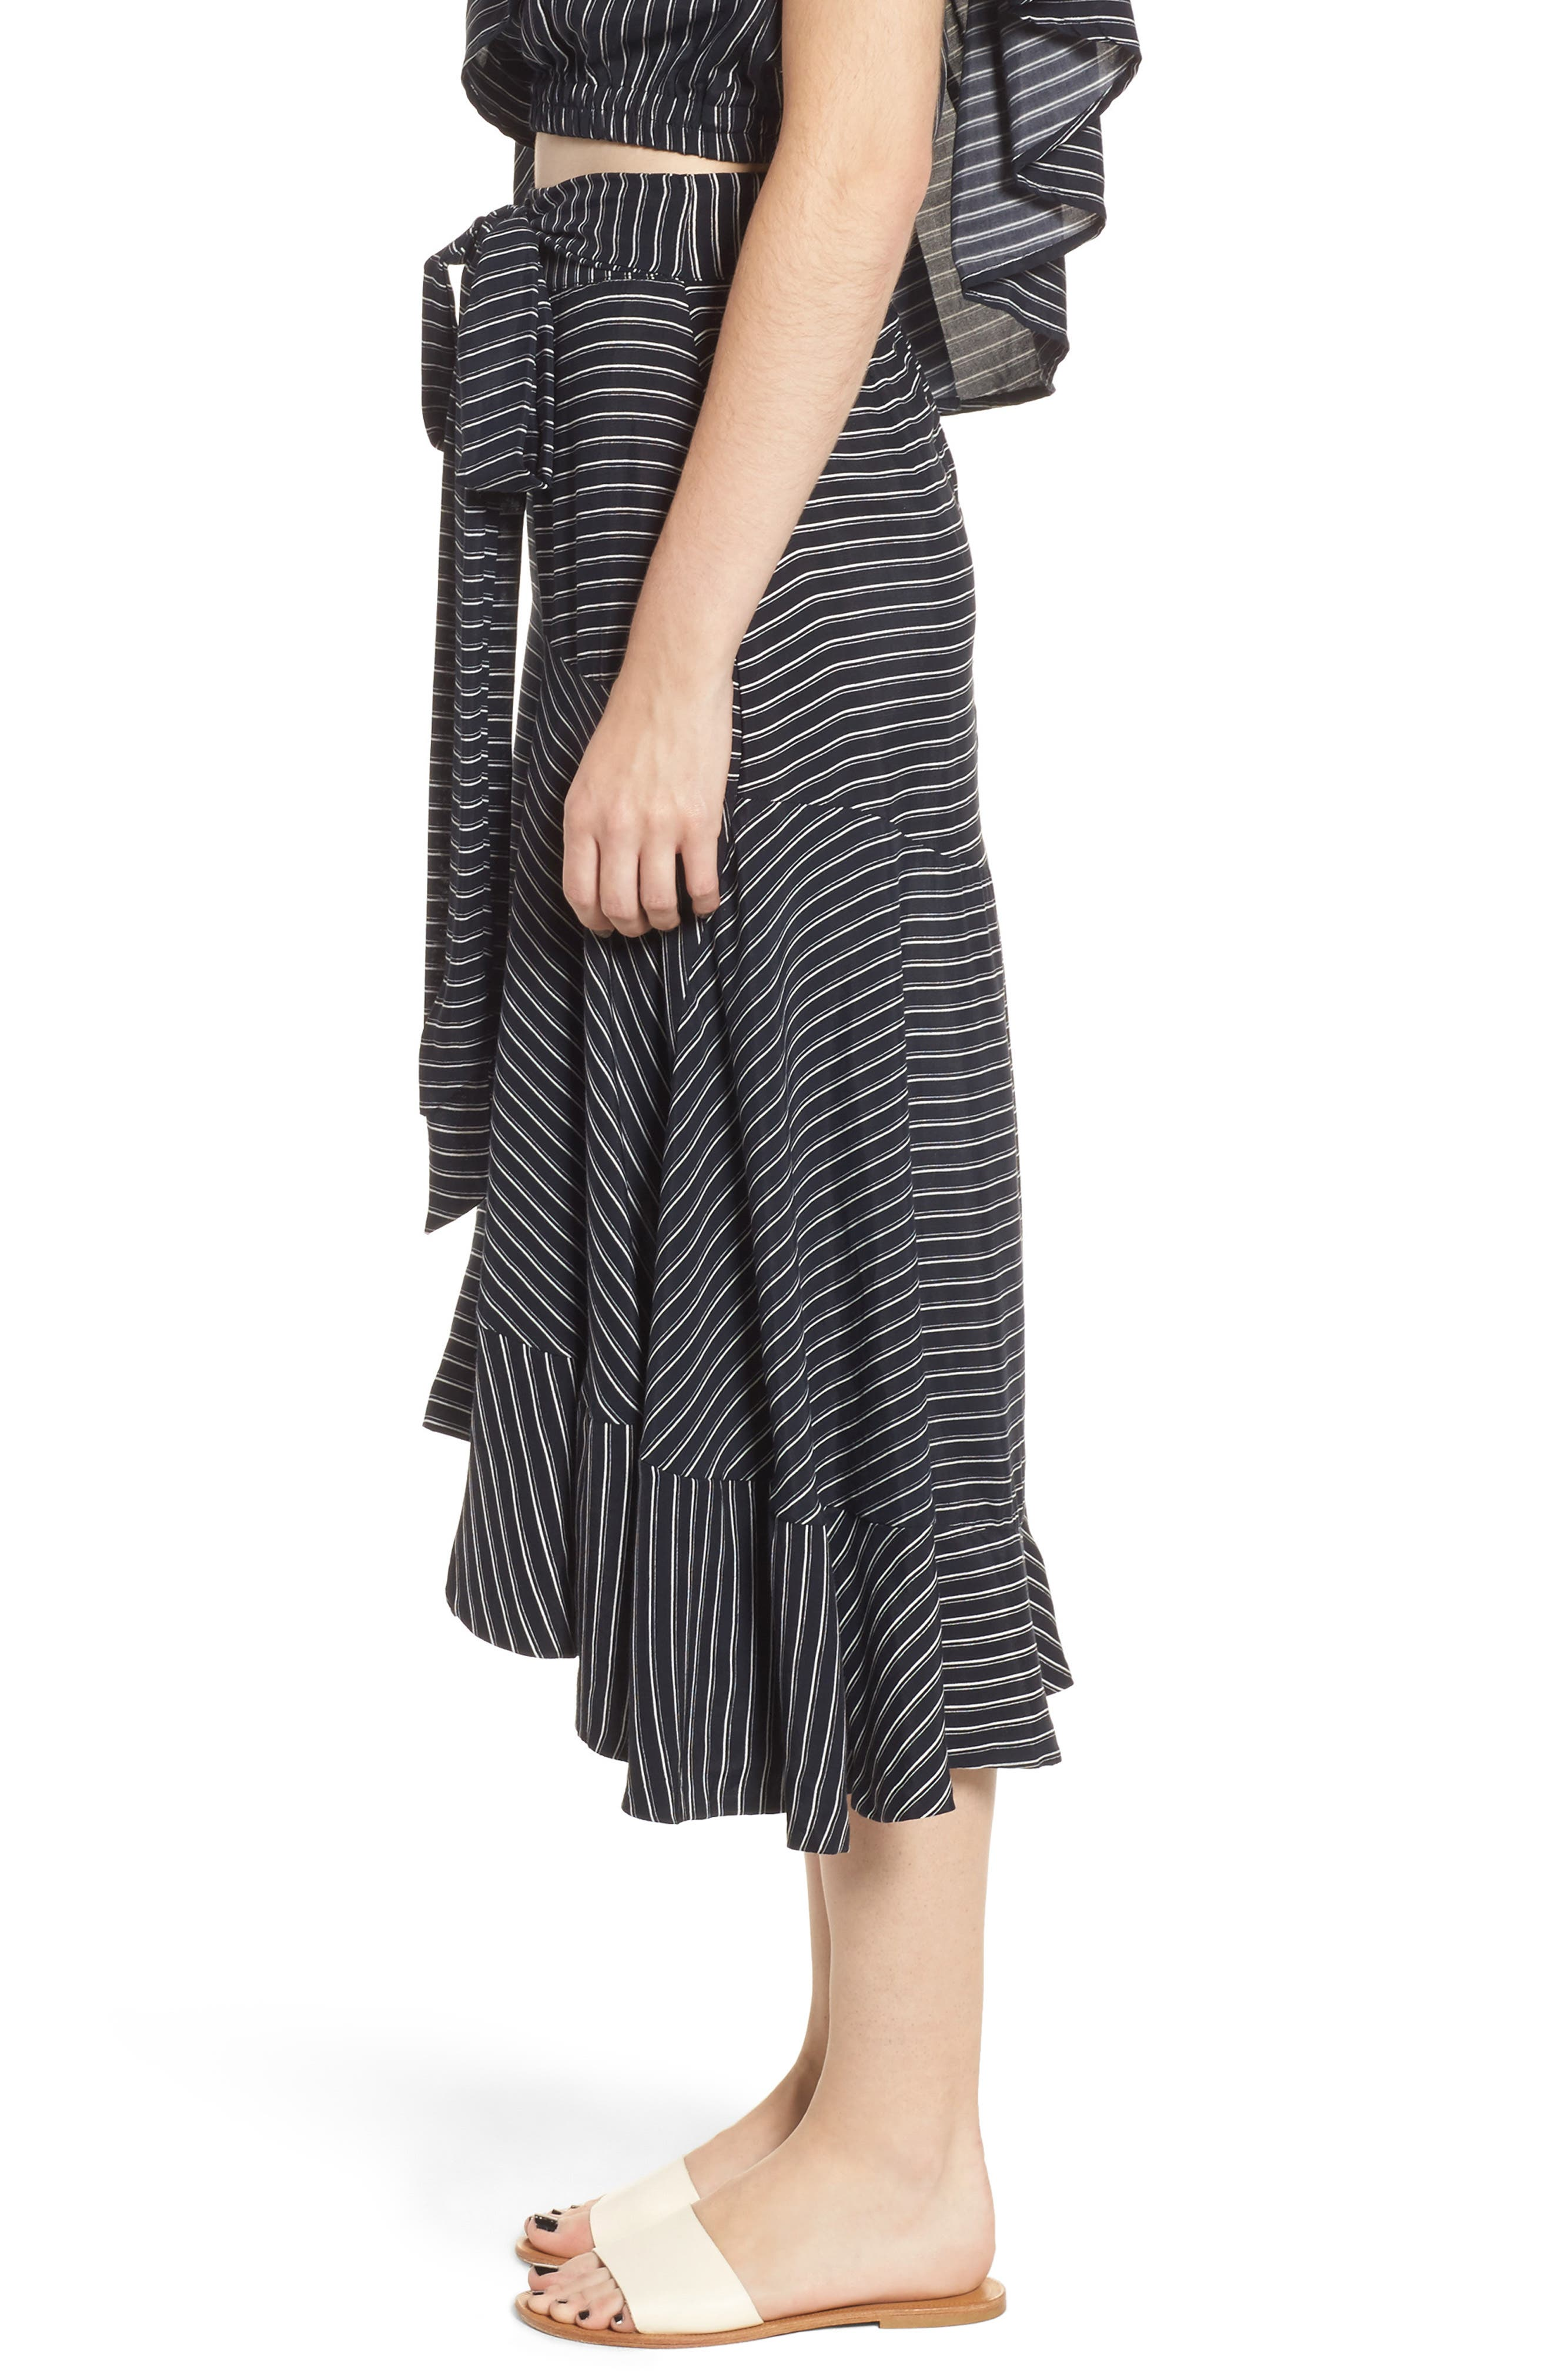 Kamares Ruffle Midi Skirt,                             Alternate thumbnail 3, color,                             San Cristobal Stripe Print